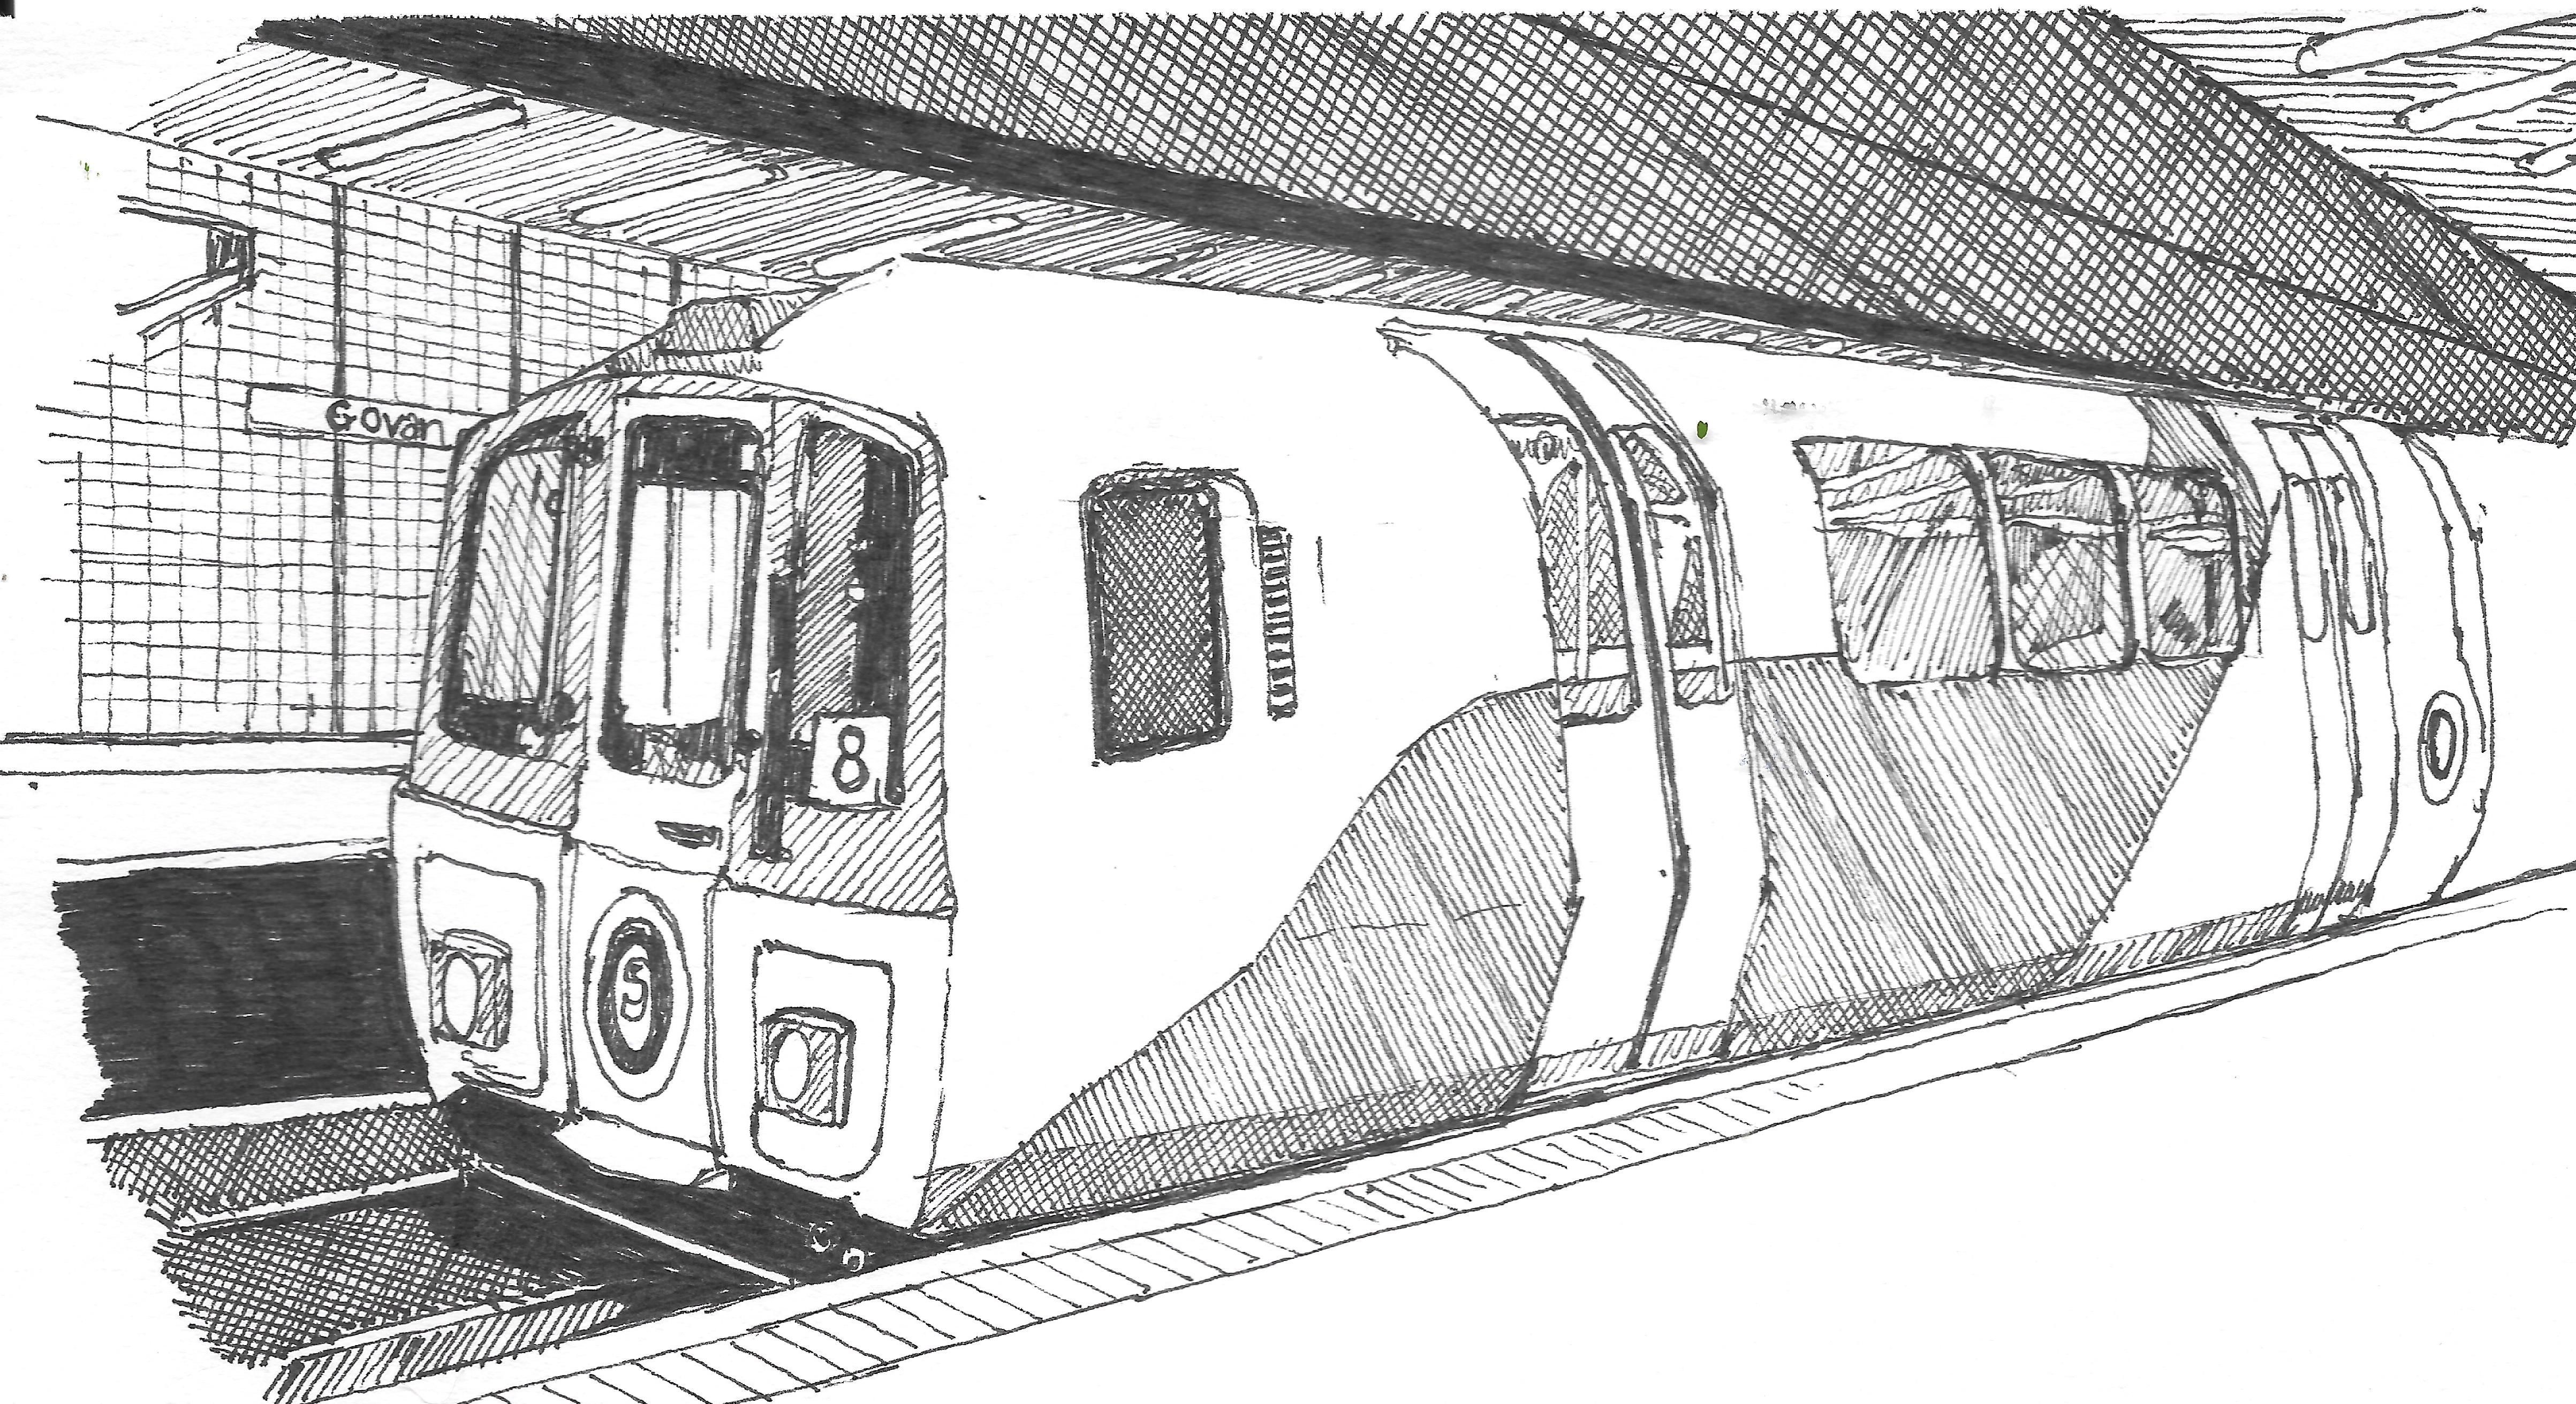 Glasgow Subway Sketched In 0 3mm And 0 7mm Ink Pen Train Sketch Train Drawing Glasgow Subway